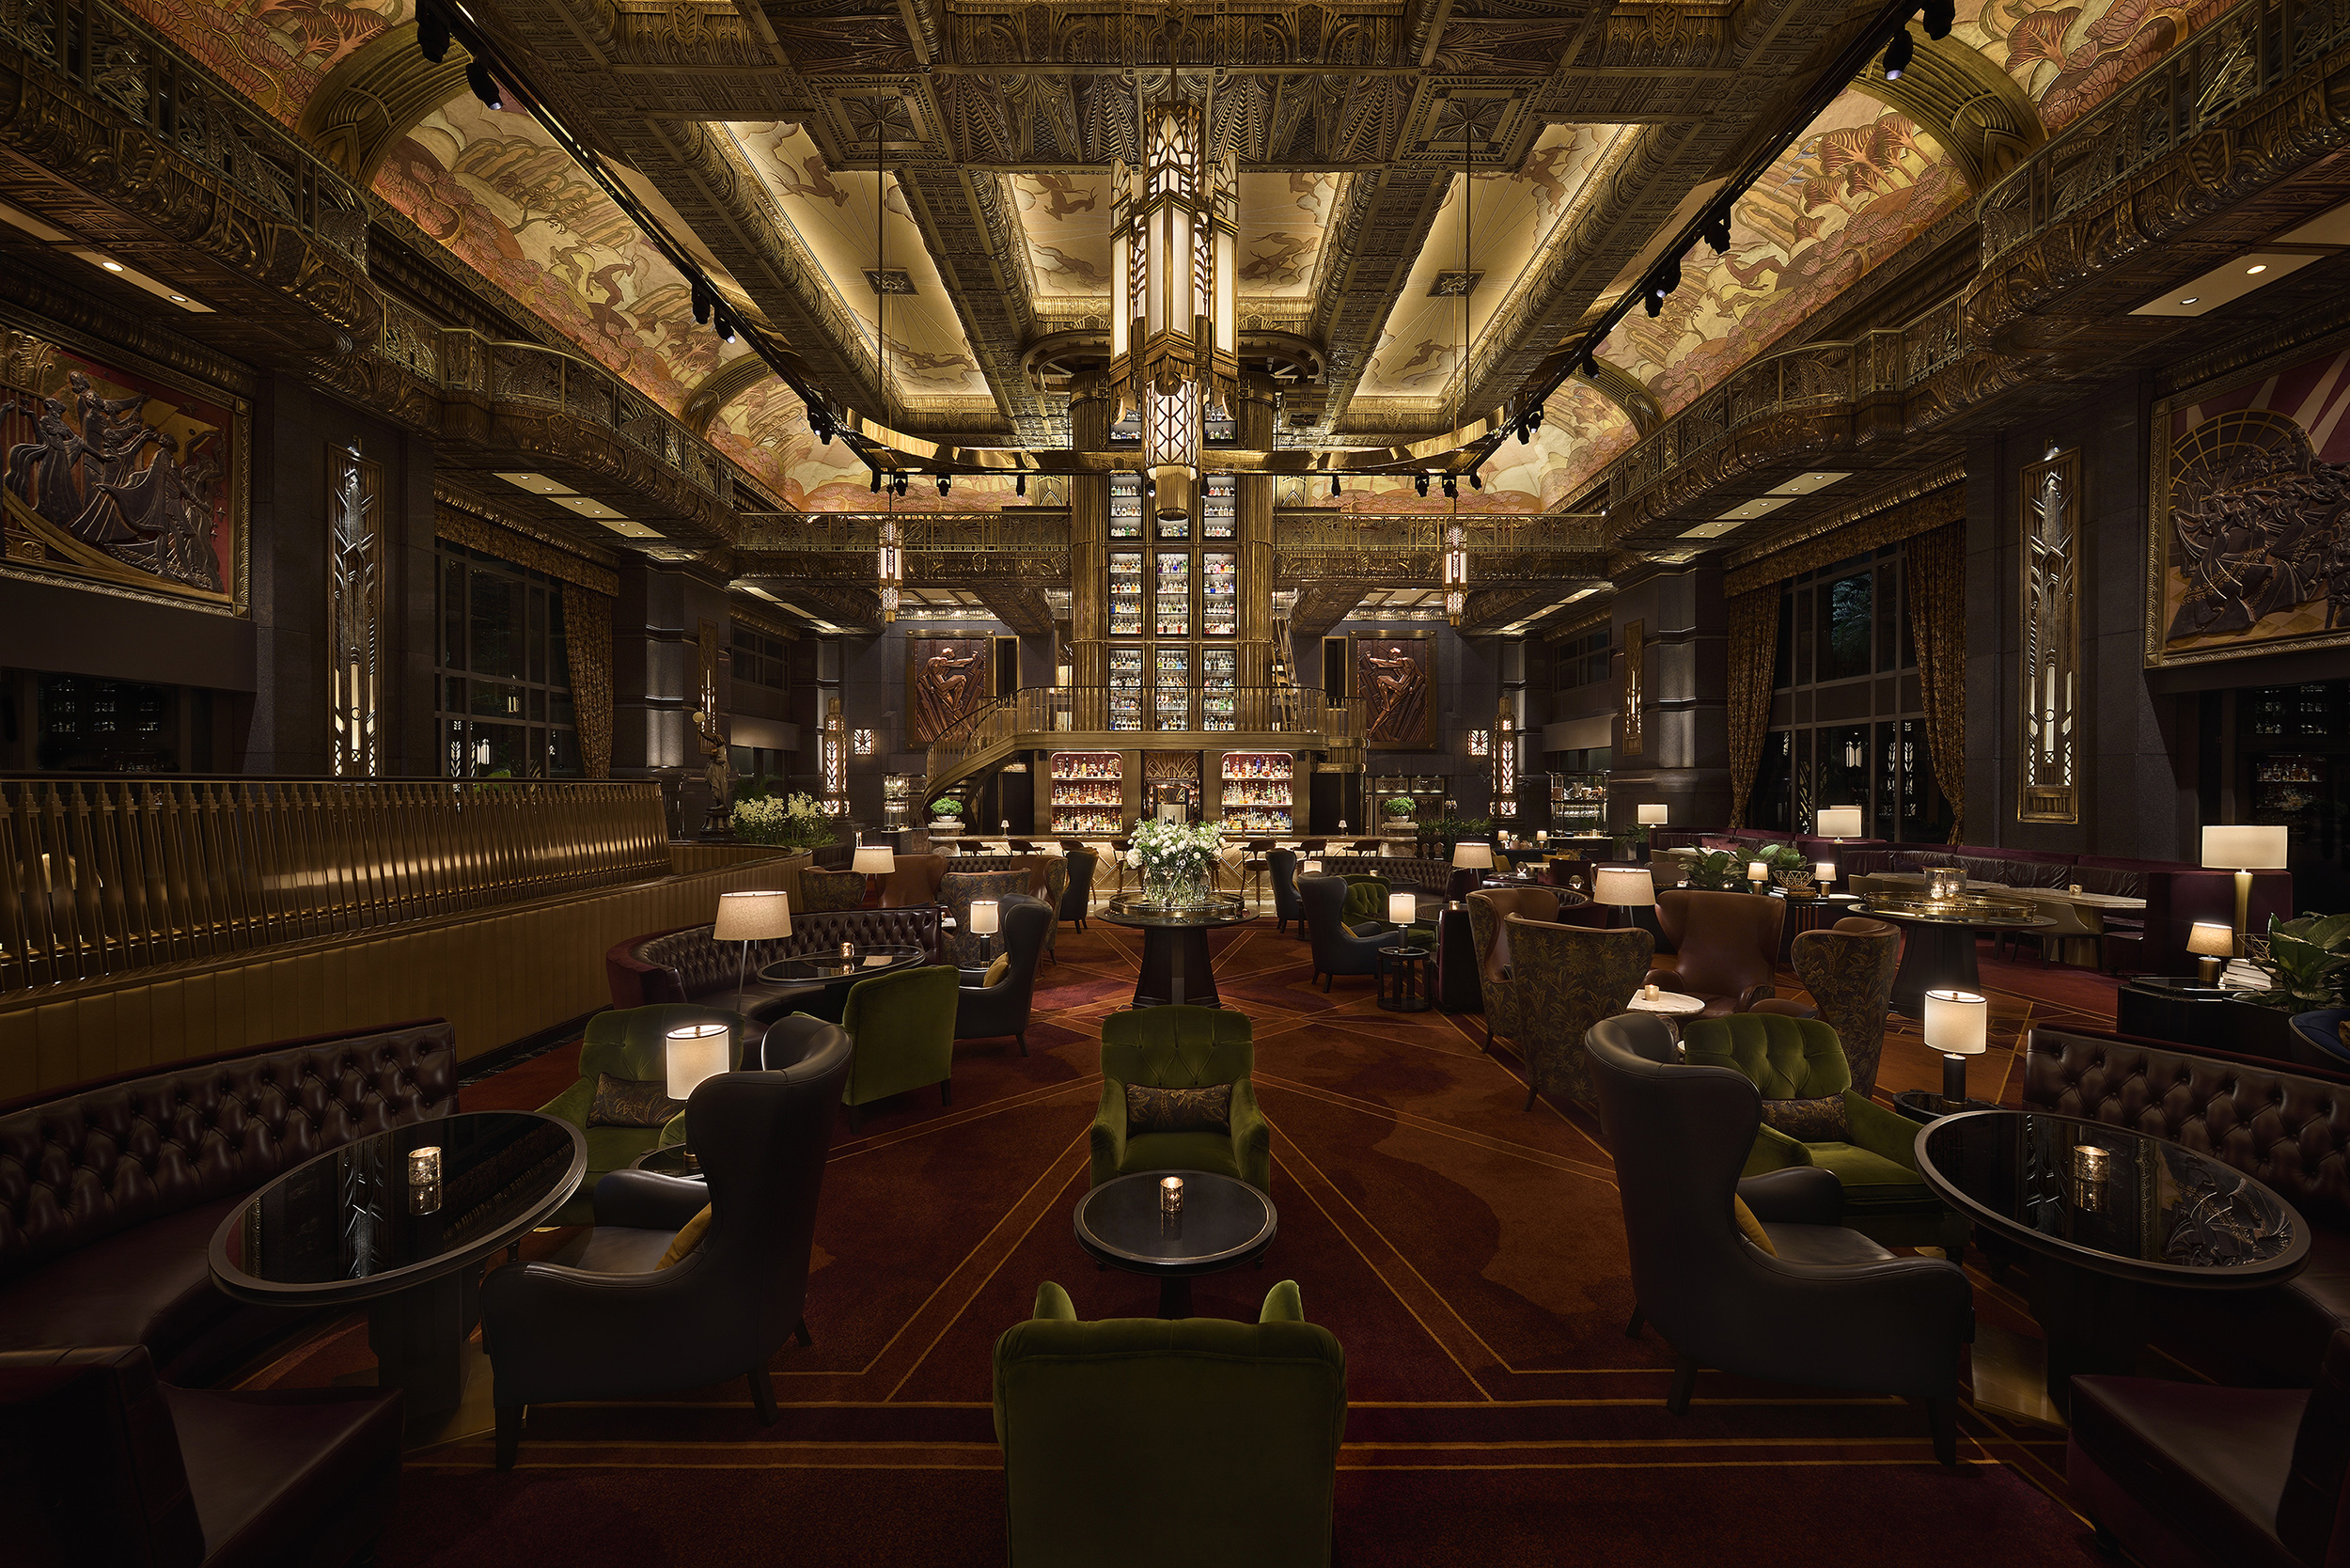 enjoy a cocktail at ATLAS as part of your Singapore tours